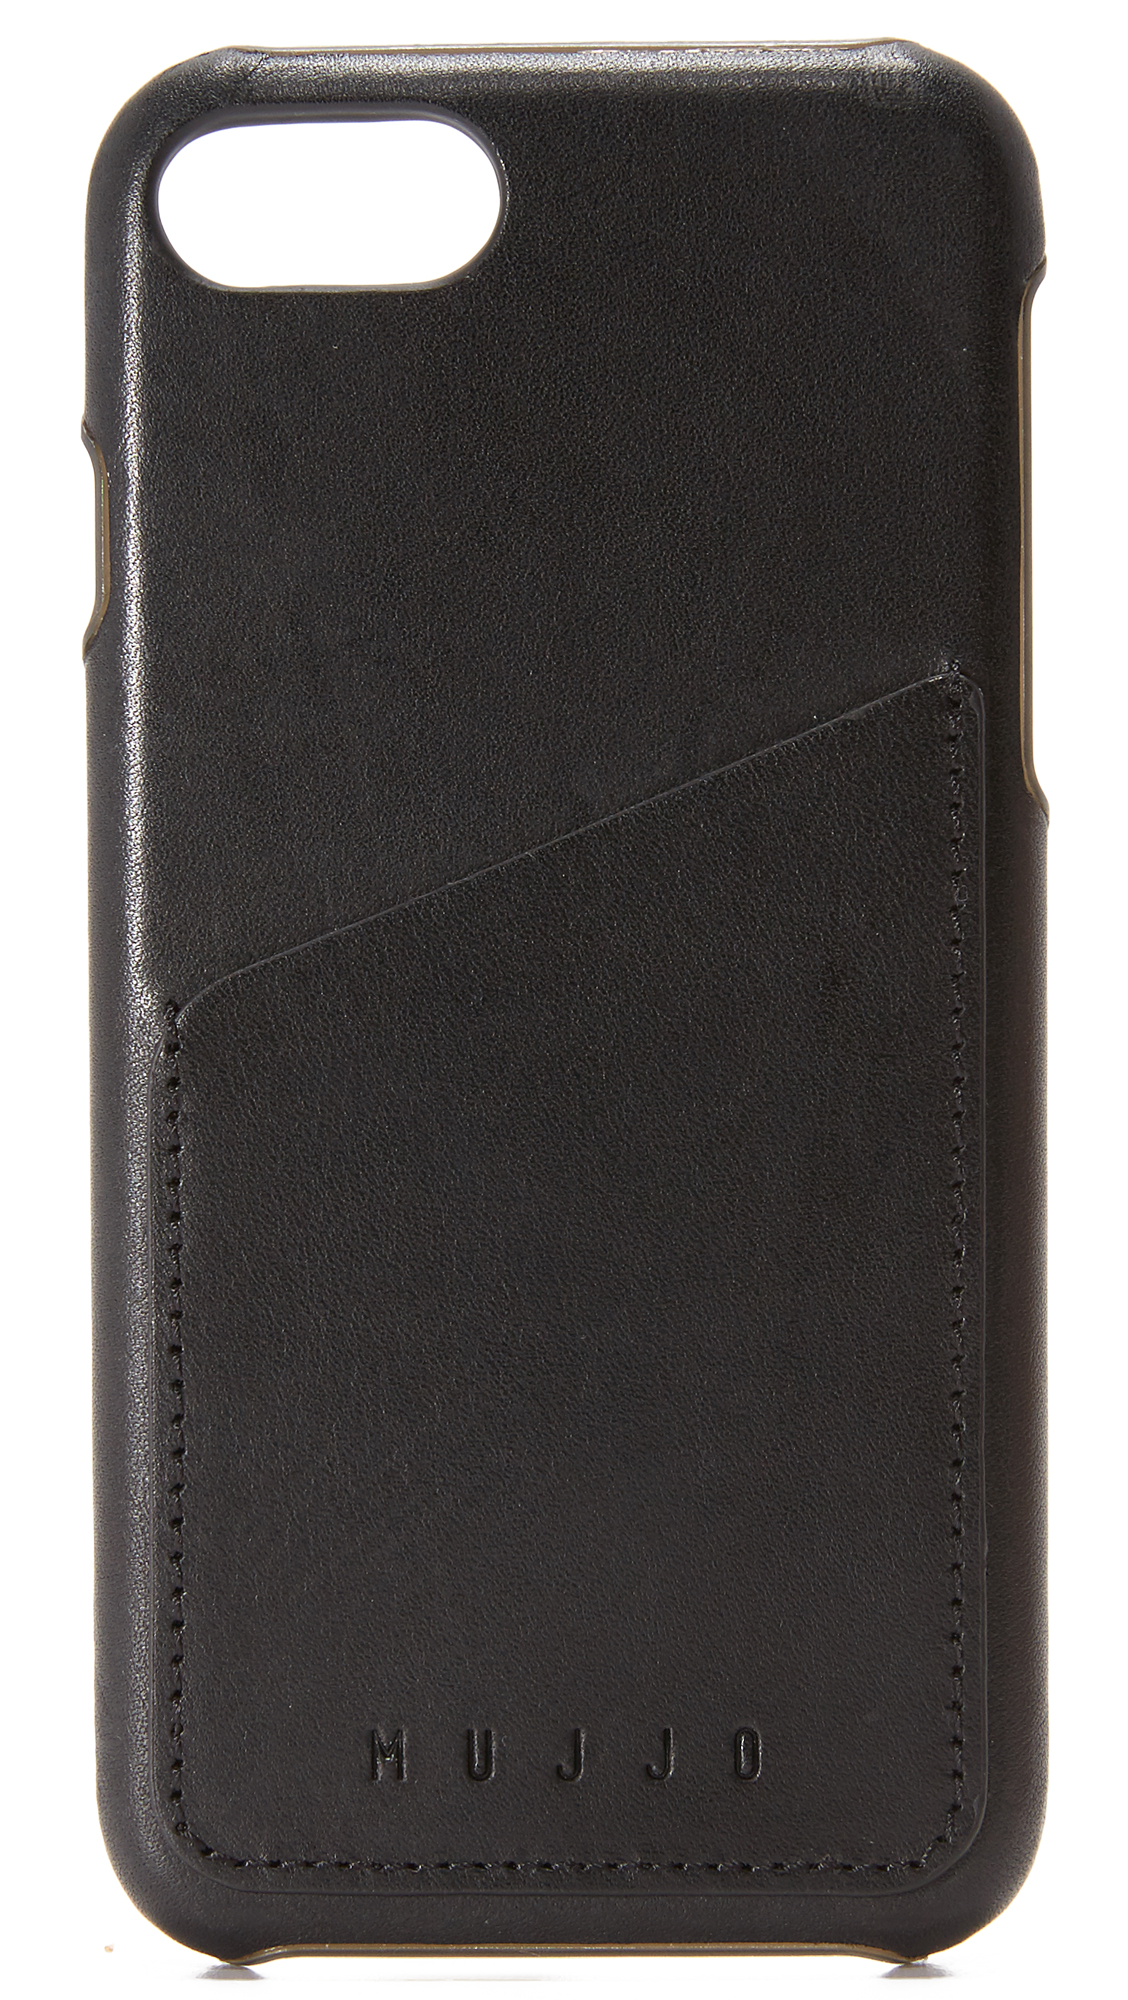 Mujjo Leather Wallet Iphone 7 Case - Black at Shopbop